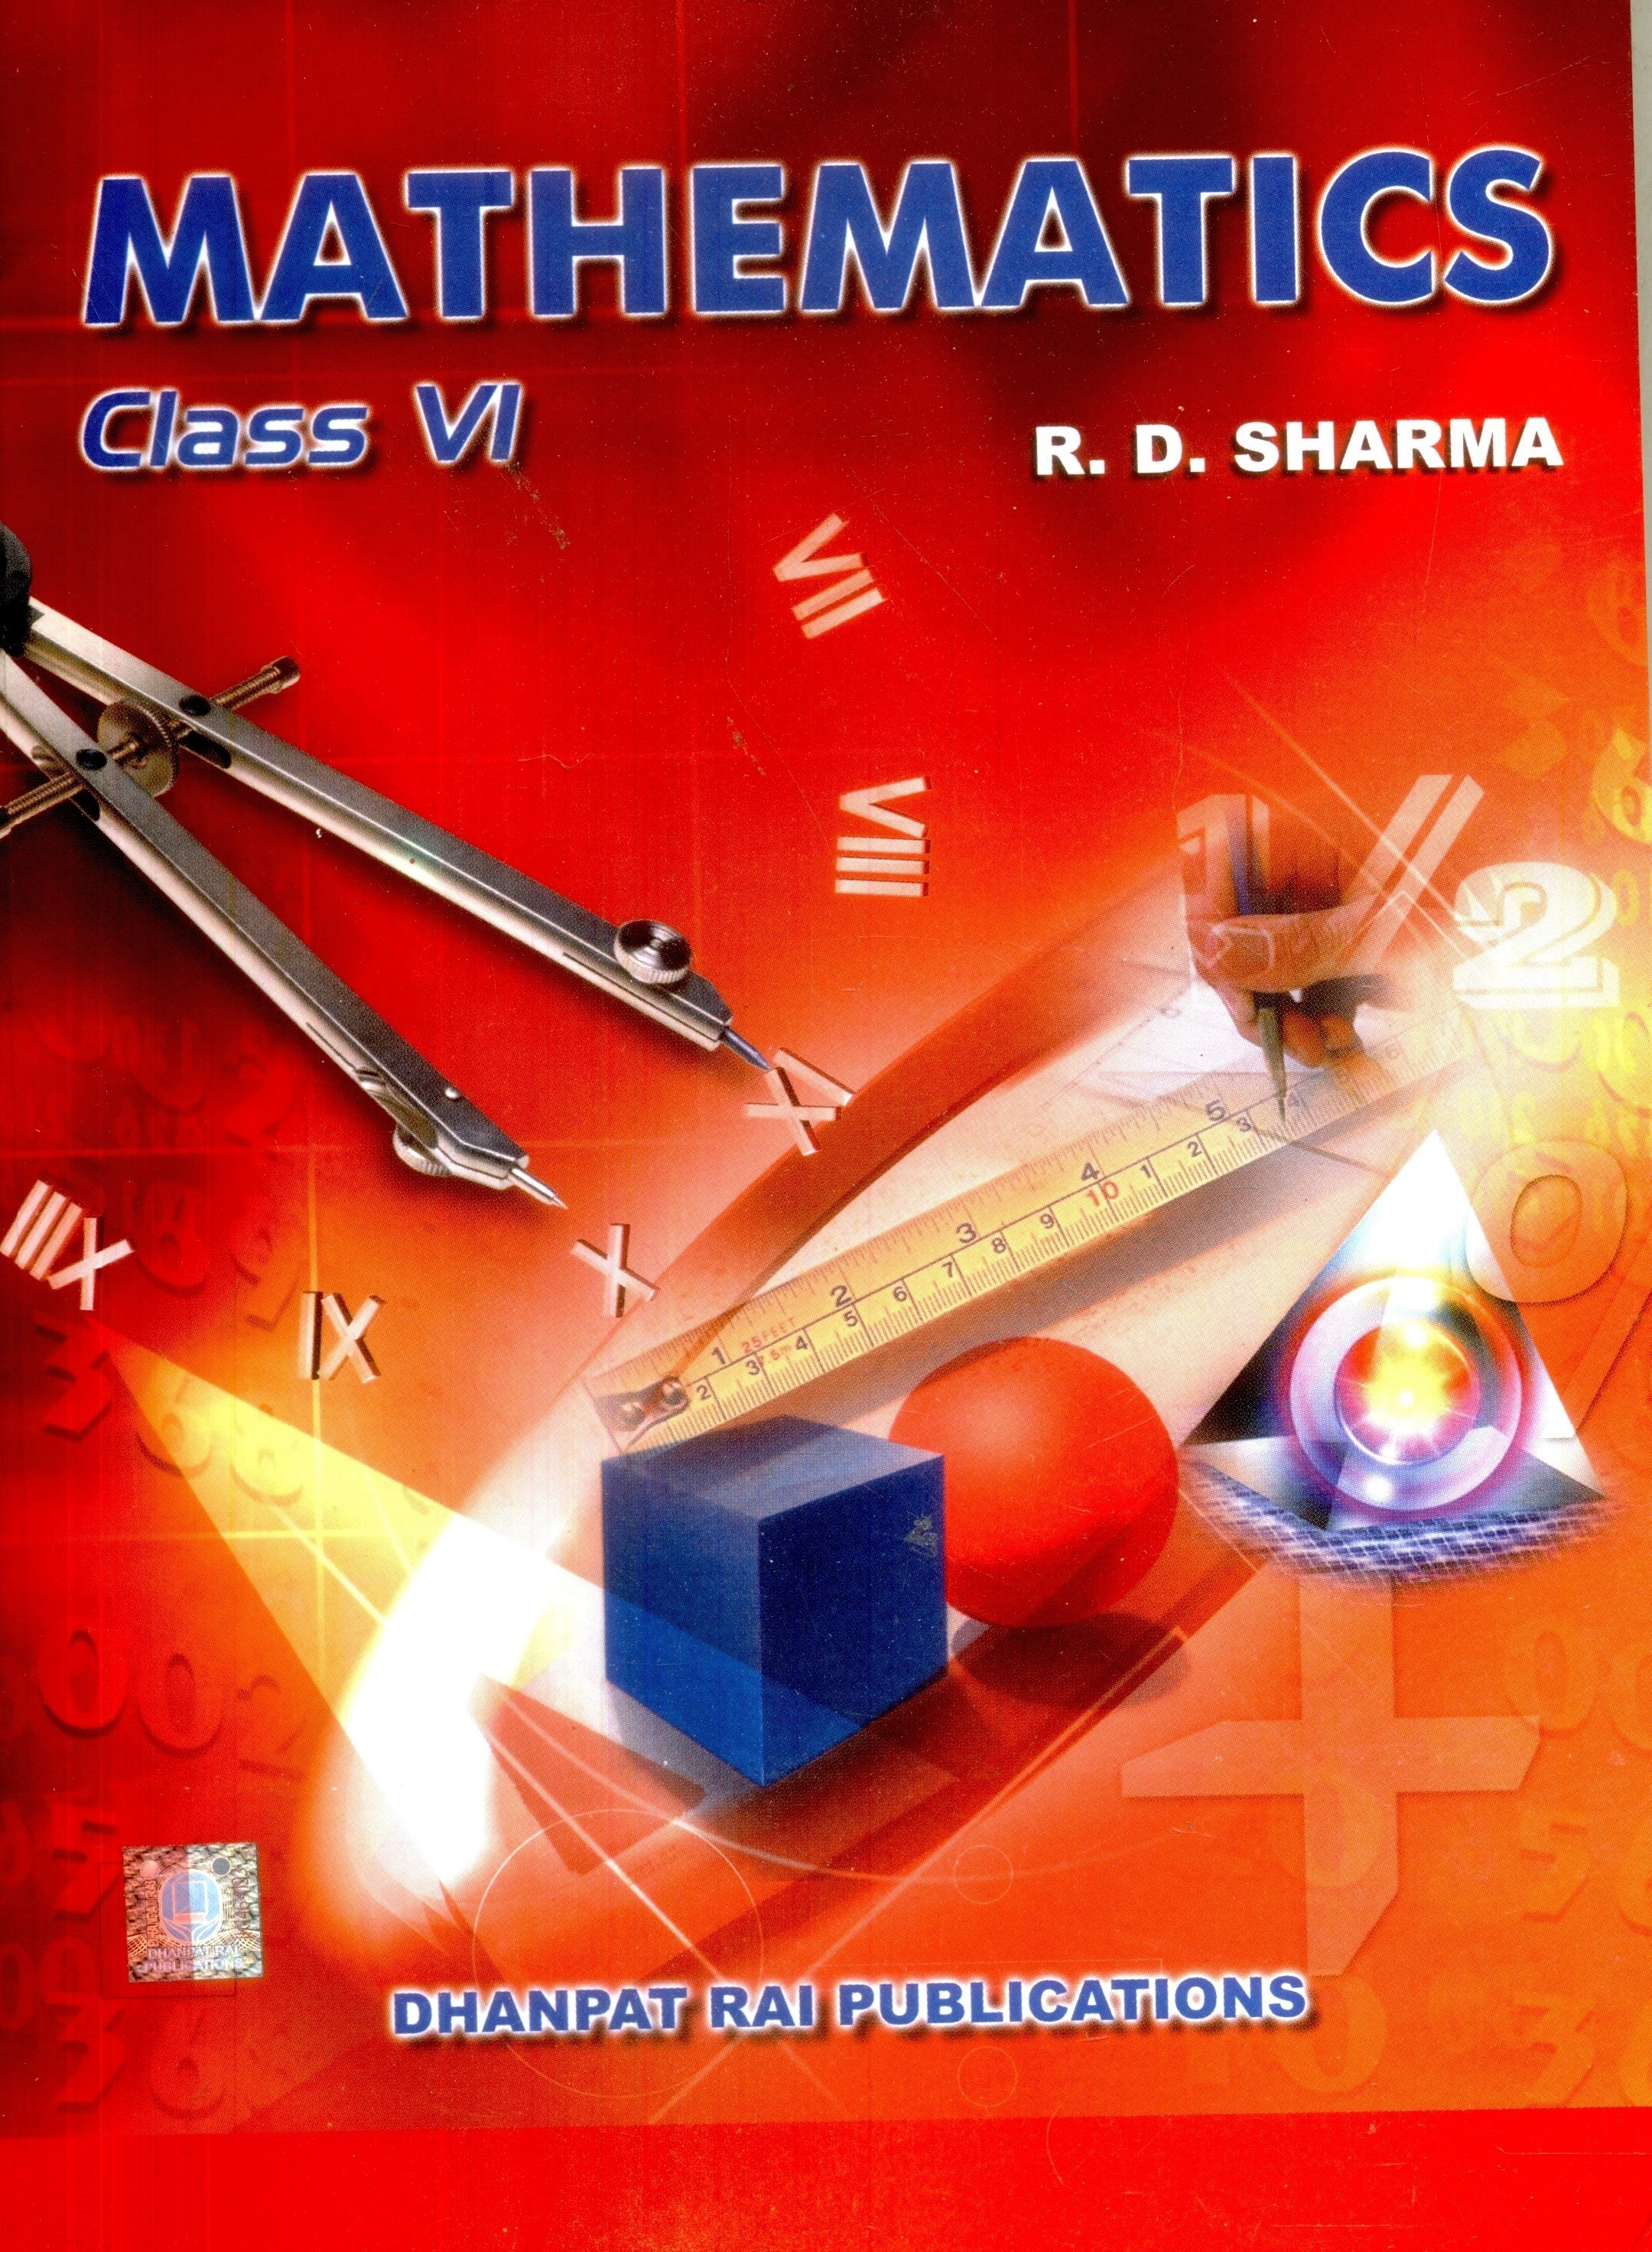 Science focus 2 second edition homework book answers